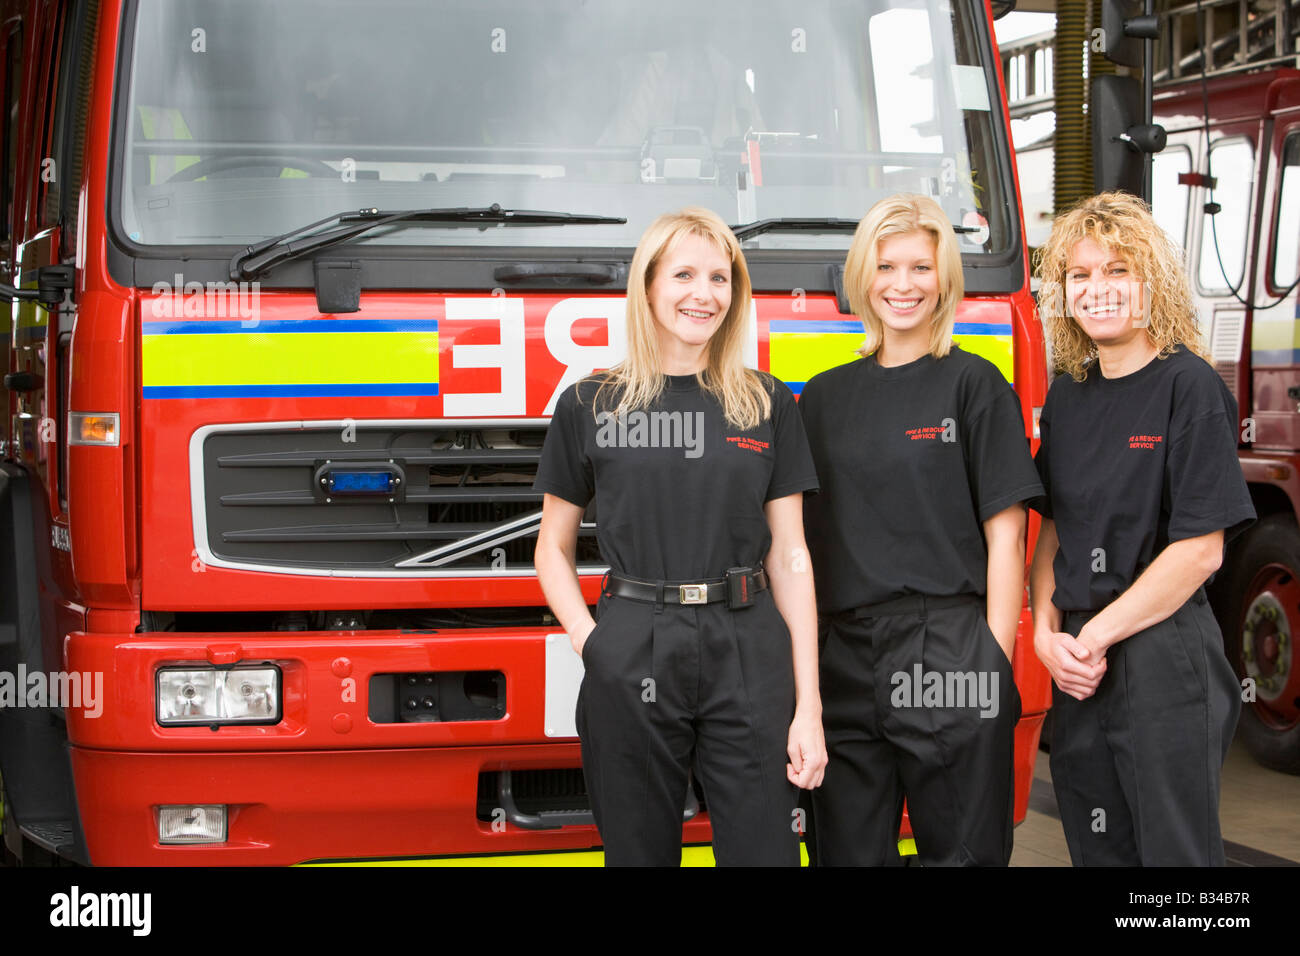 Three firefighters standing in front of fire engine - Stock Image